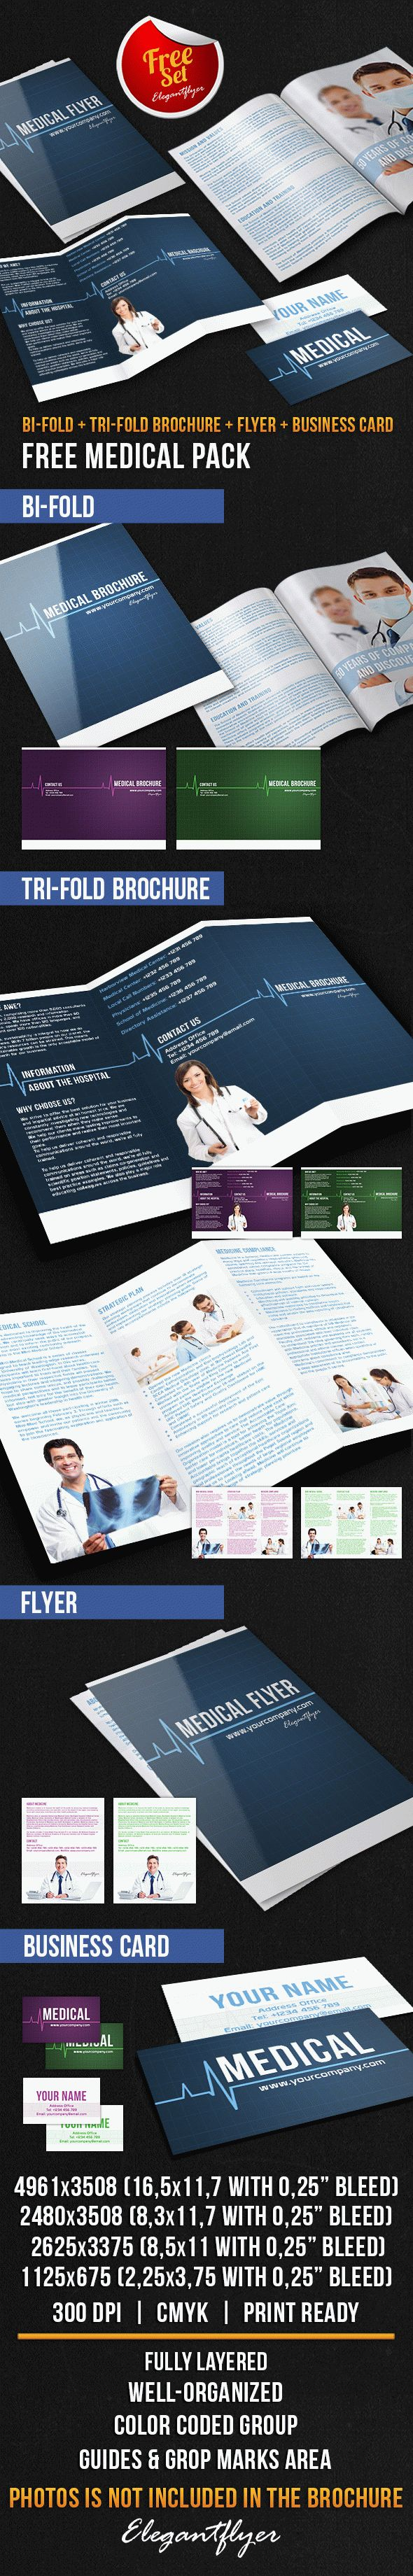 Medical Brochure Pack – Free PSD Template